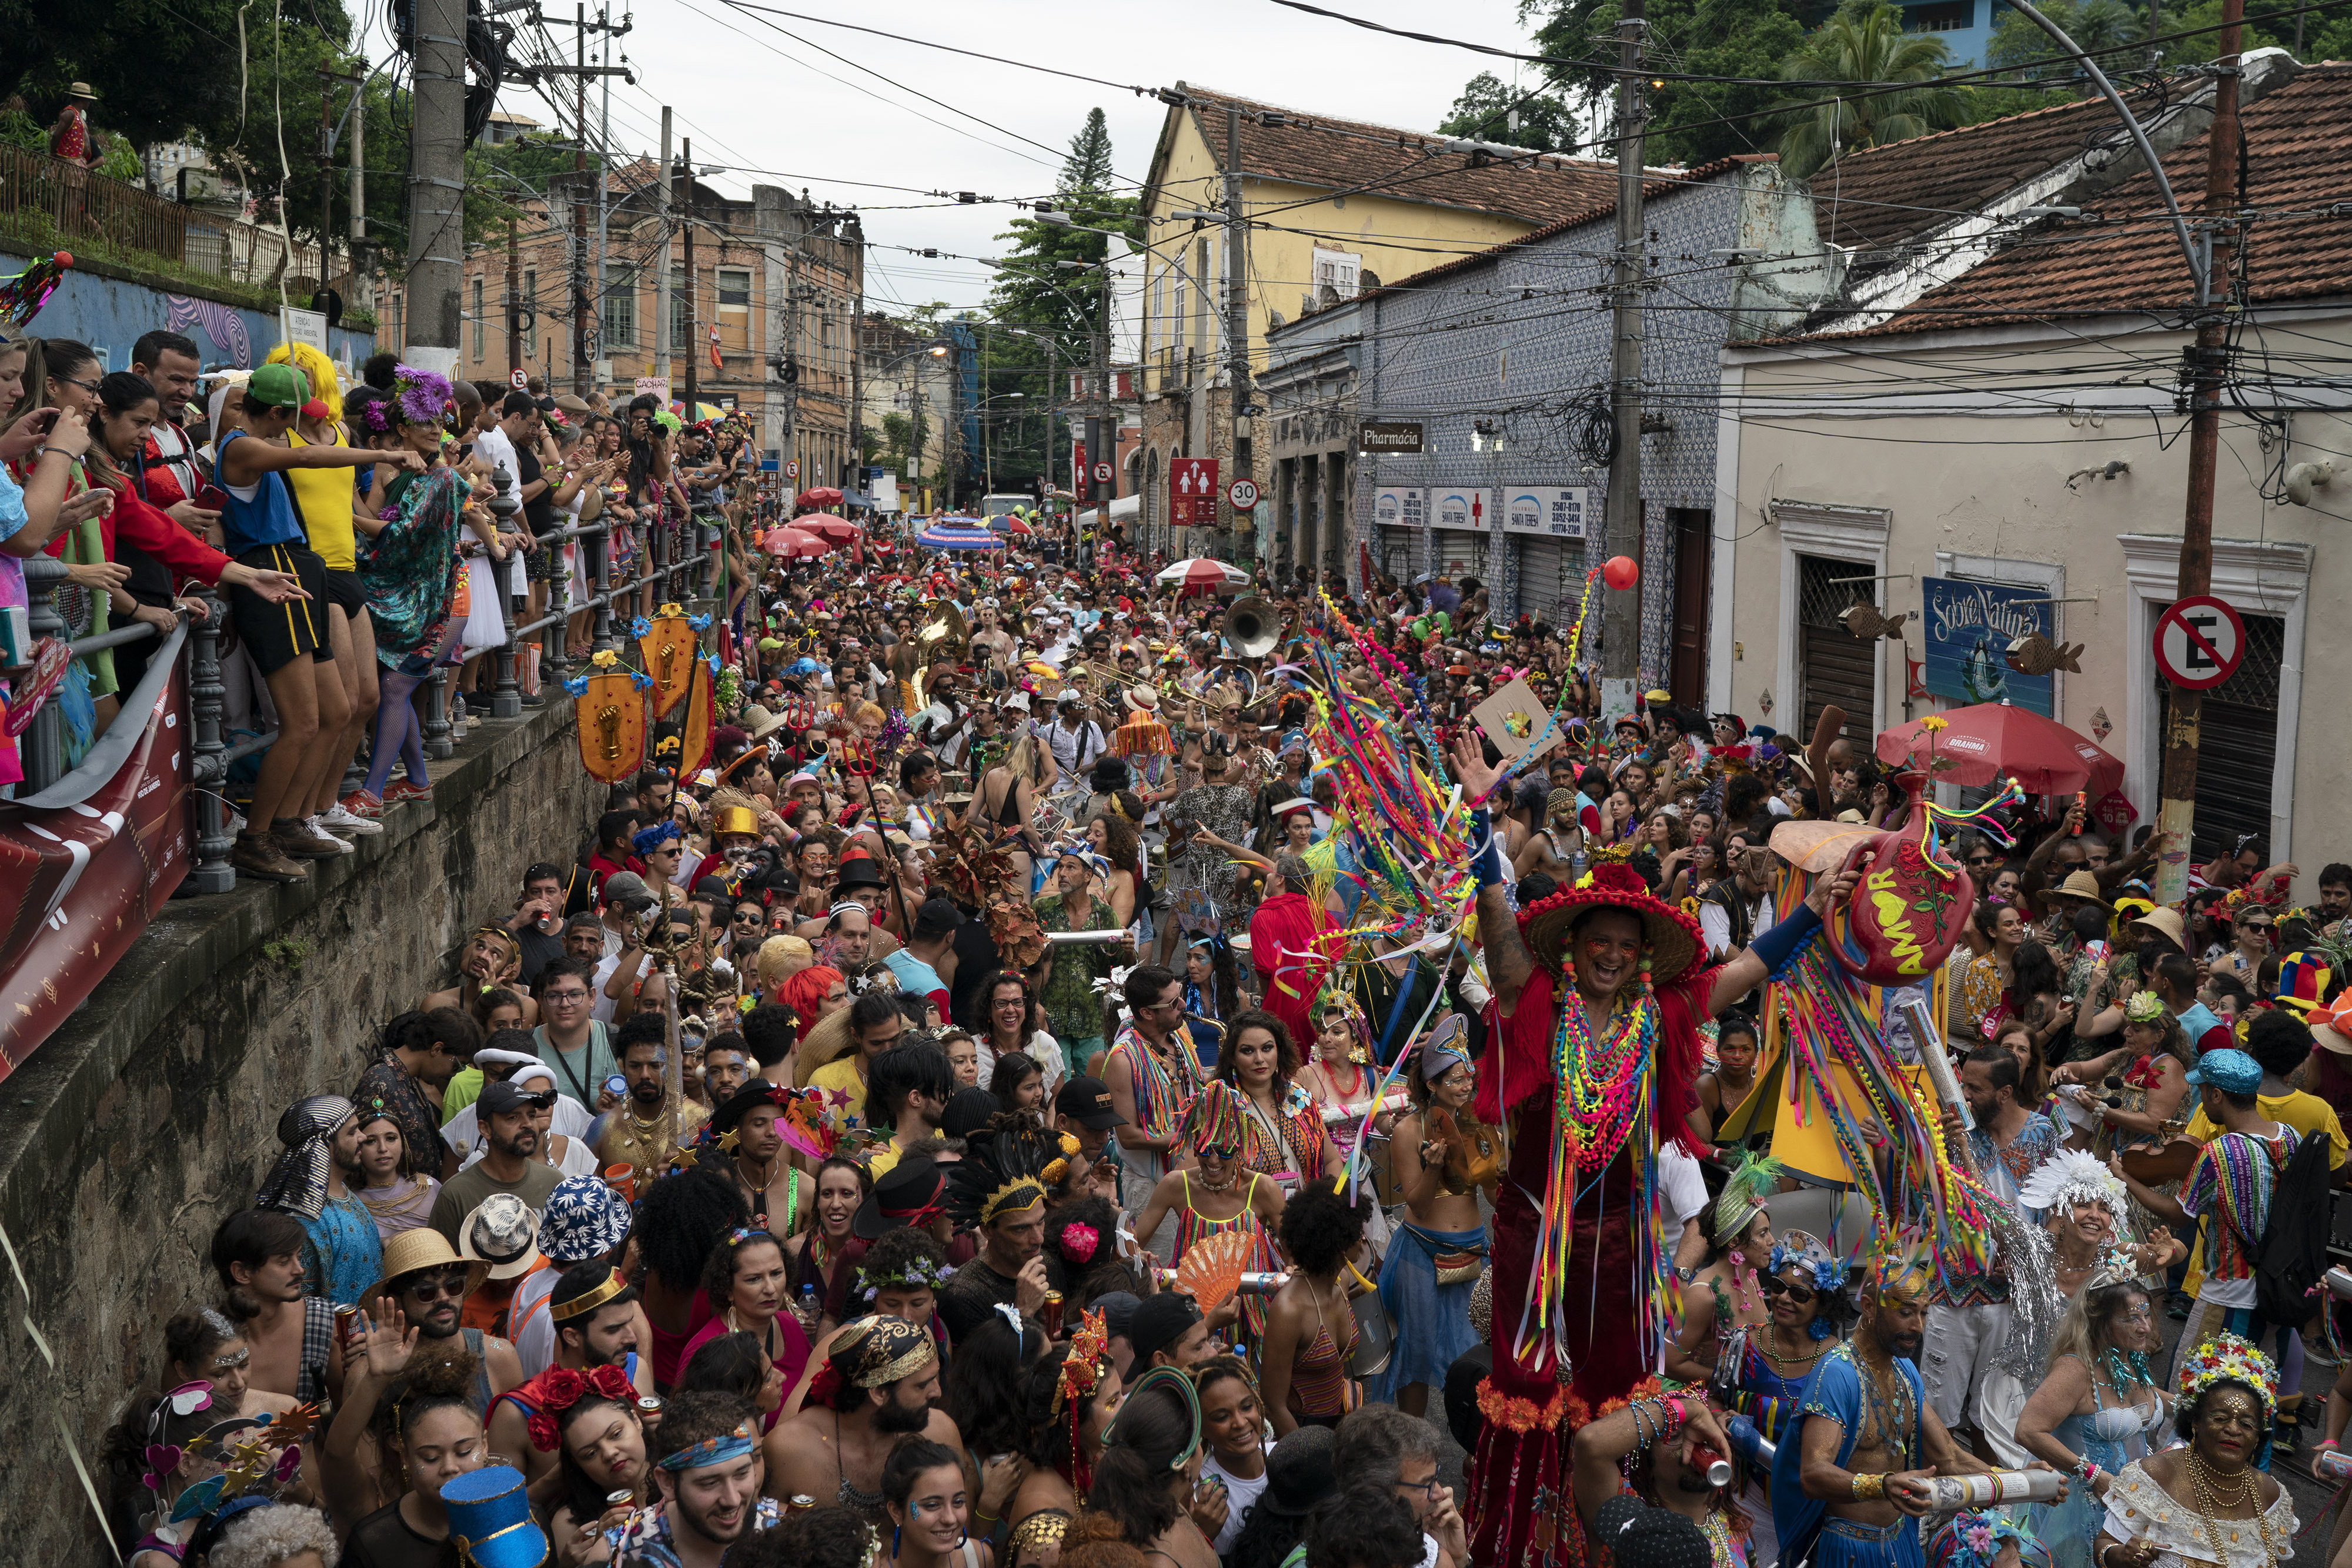 Revelers perform at the  Ceu na Terra  or Heaven on Earth street party in Rio de Janeiro, Brazil, on Feb. 22, 2020.